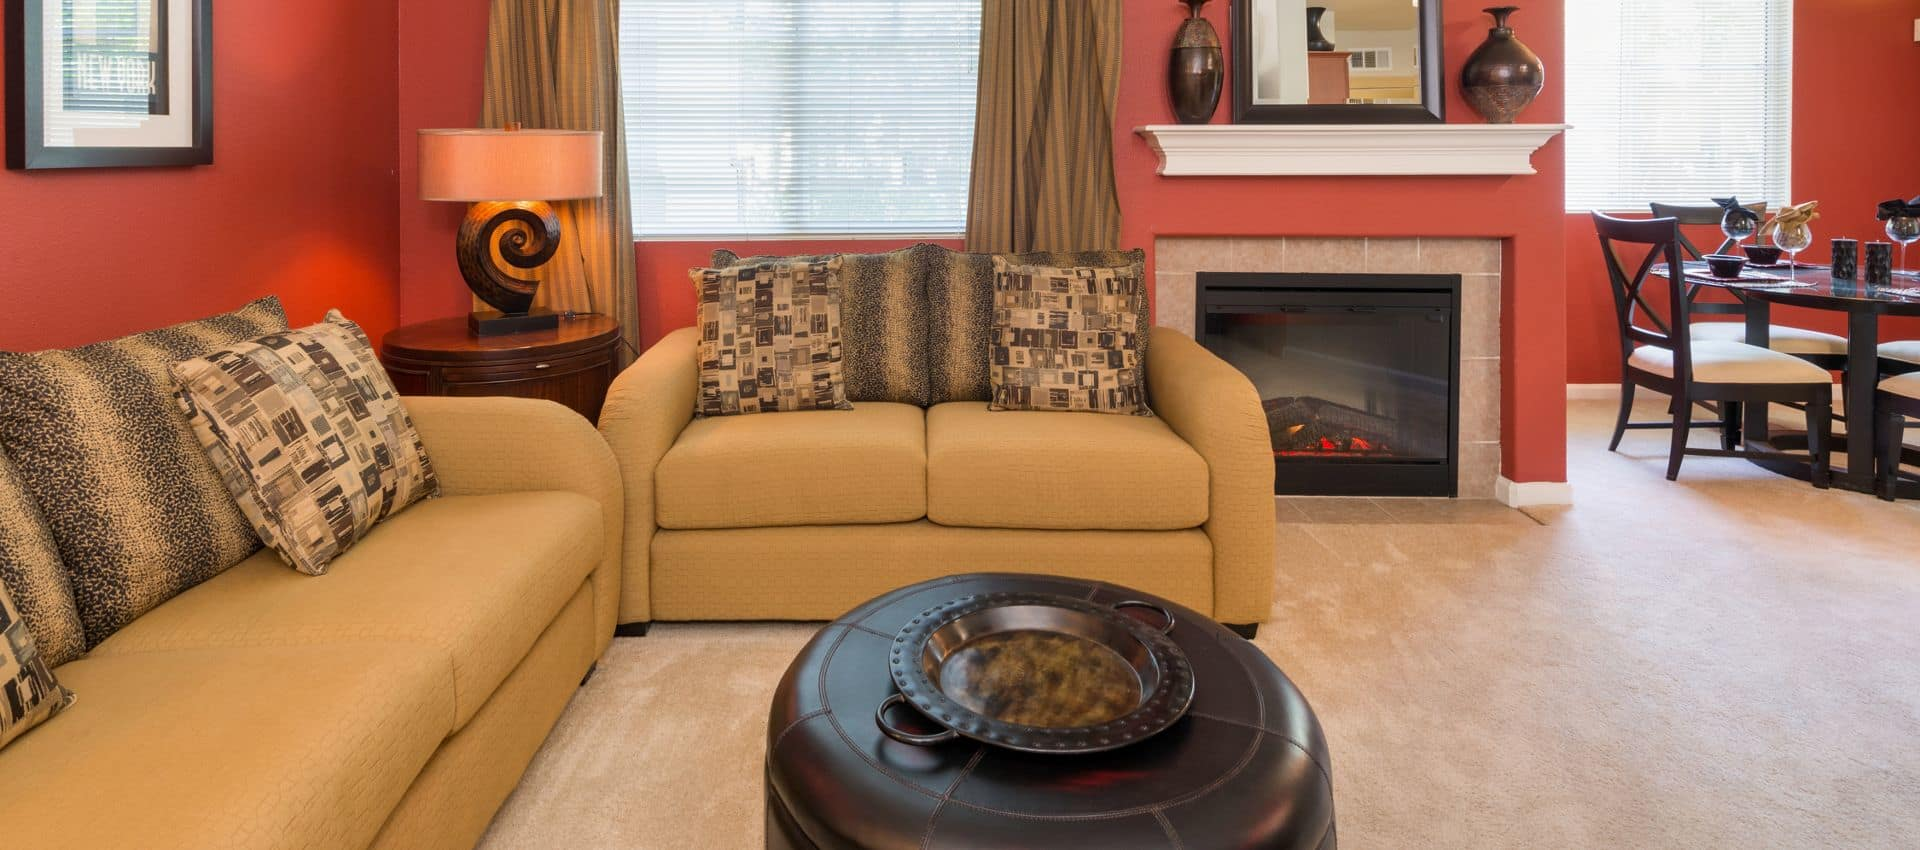 The Artisan Apartment Homes's Well Decorated Living Room in Sacramento, CA